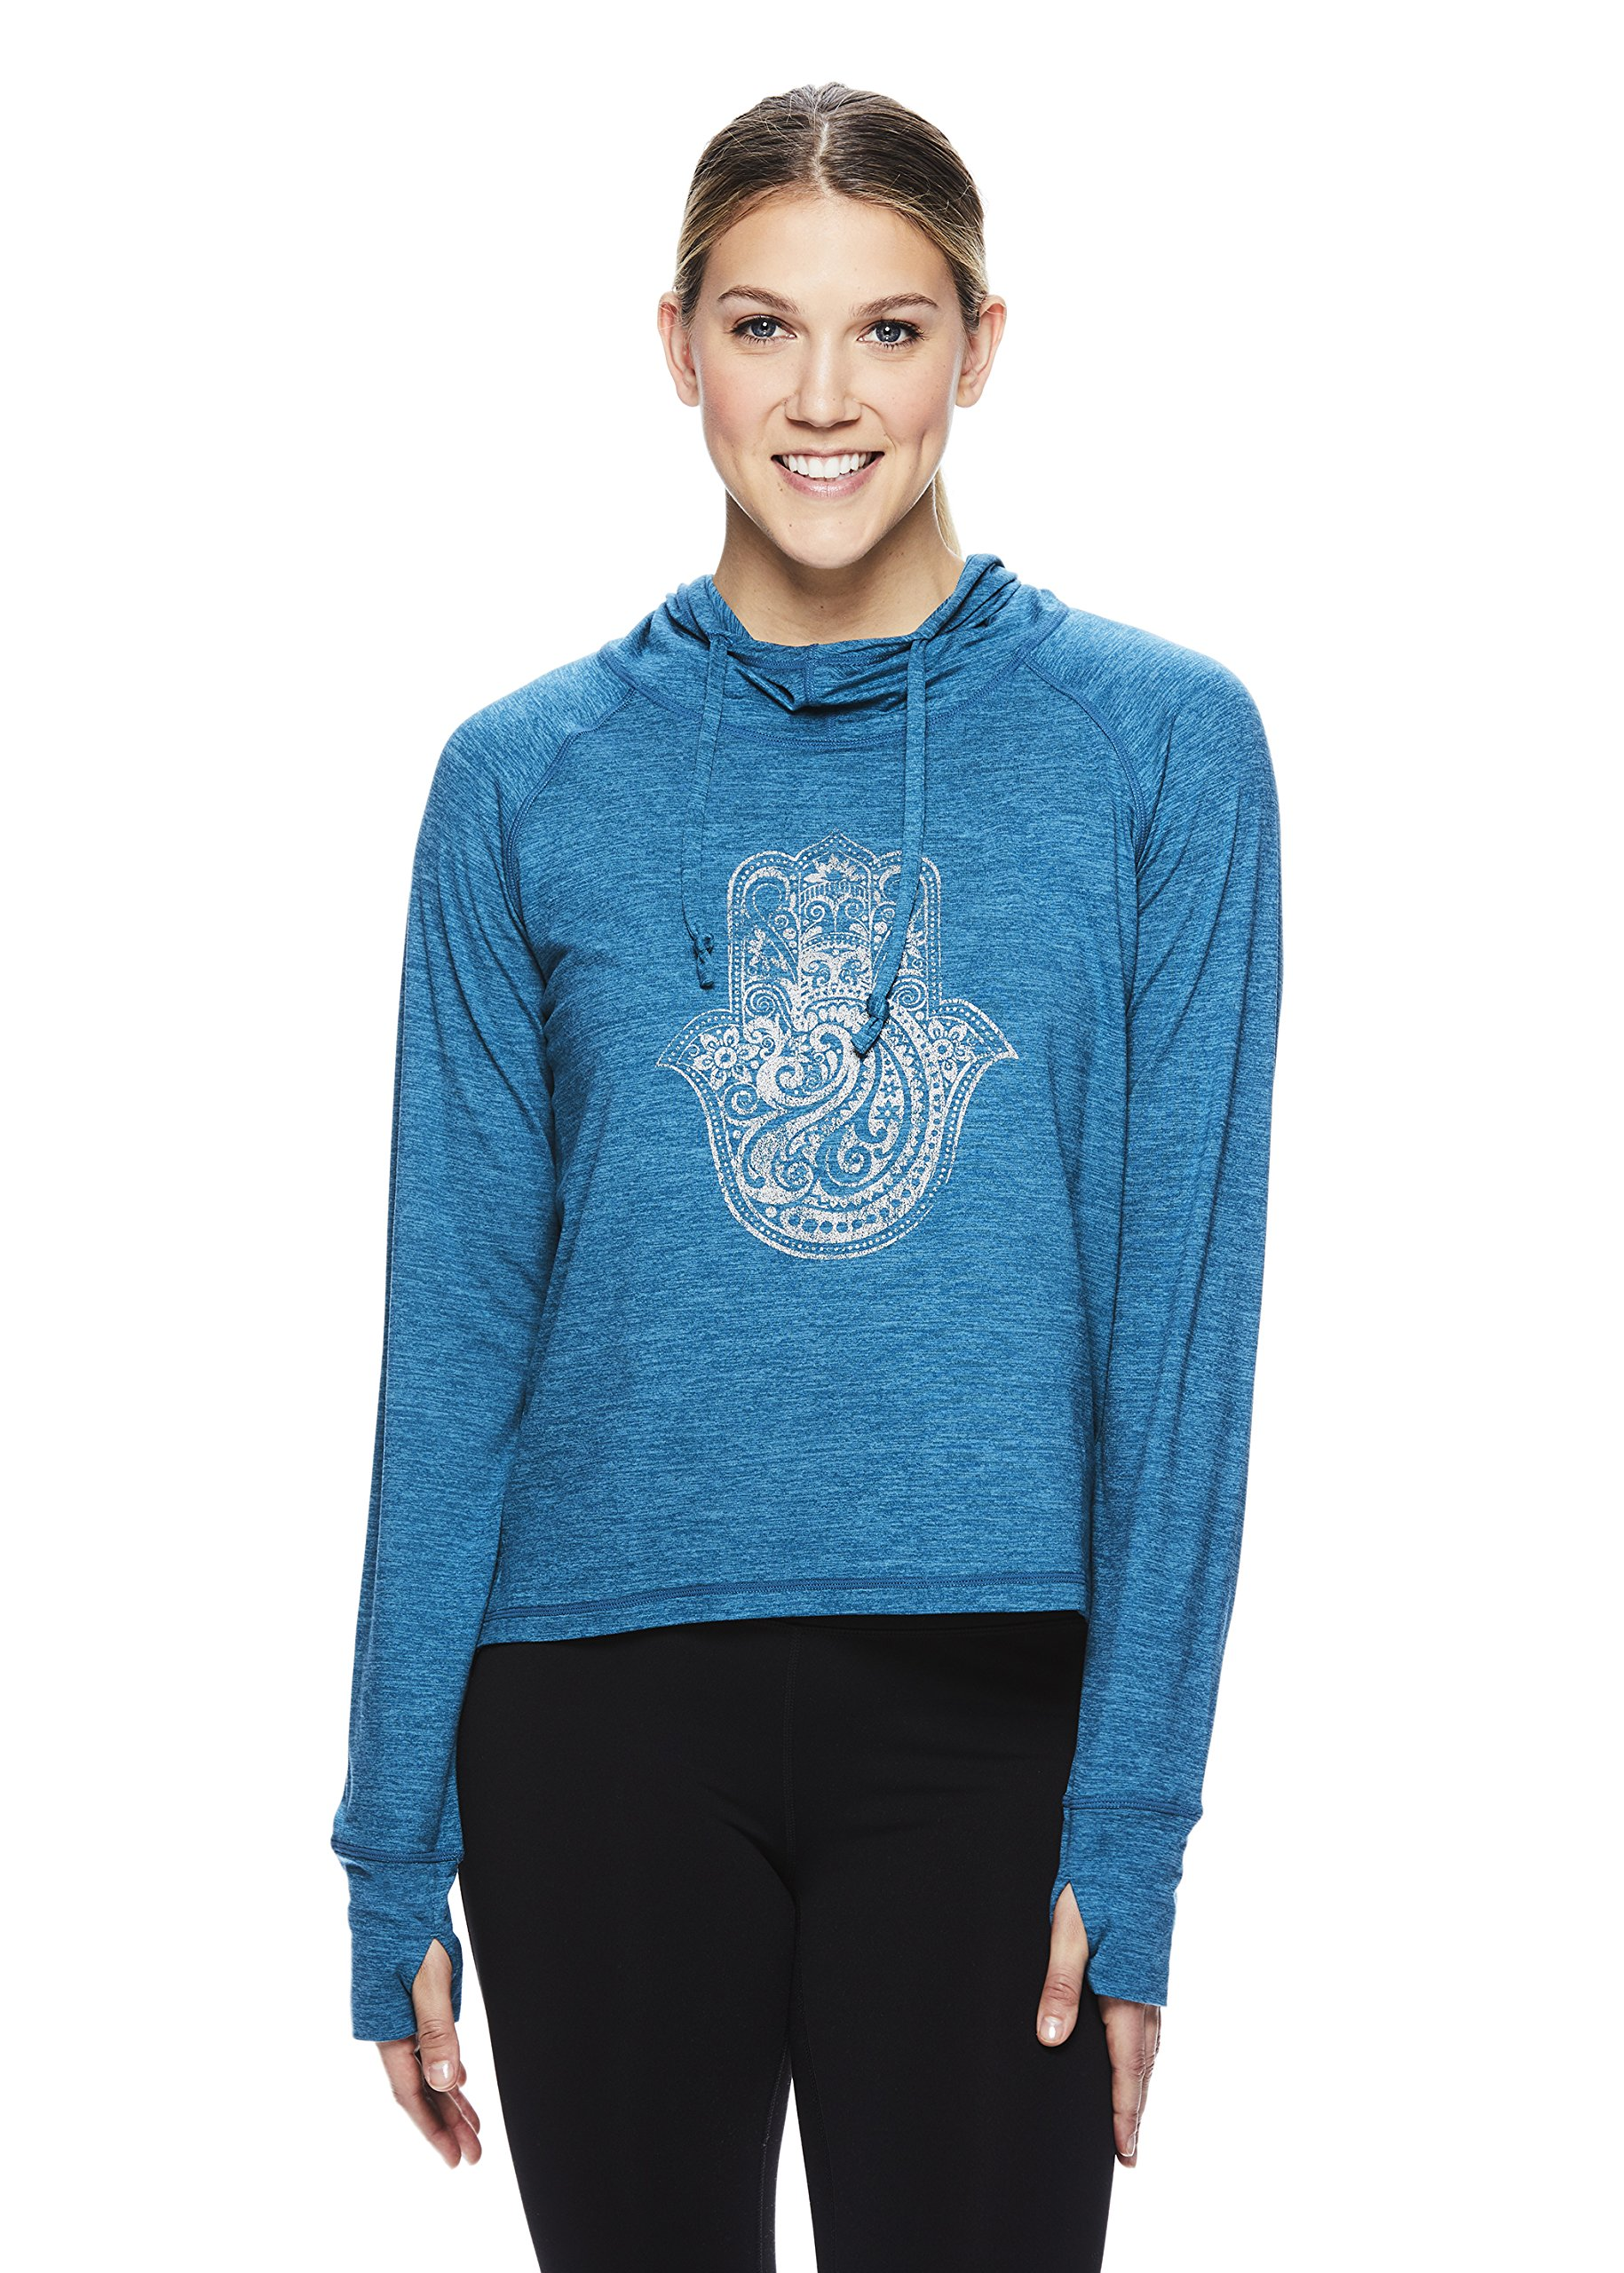 Gaiam Women's Graphic Long Sleeve Hoodie - Hooded Activewear Workout & Yoga Sweater - Maya Deep Teal Heather, X-Small by Gaiam